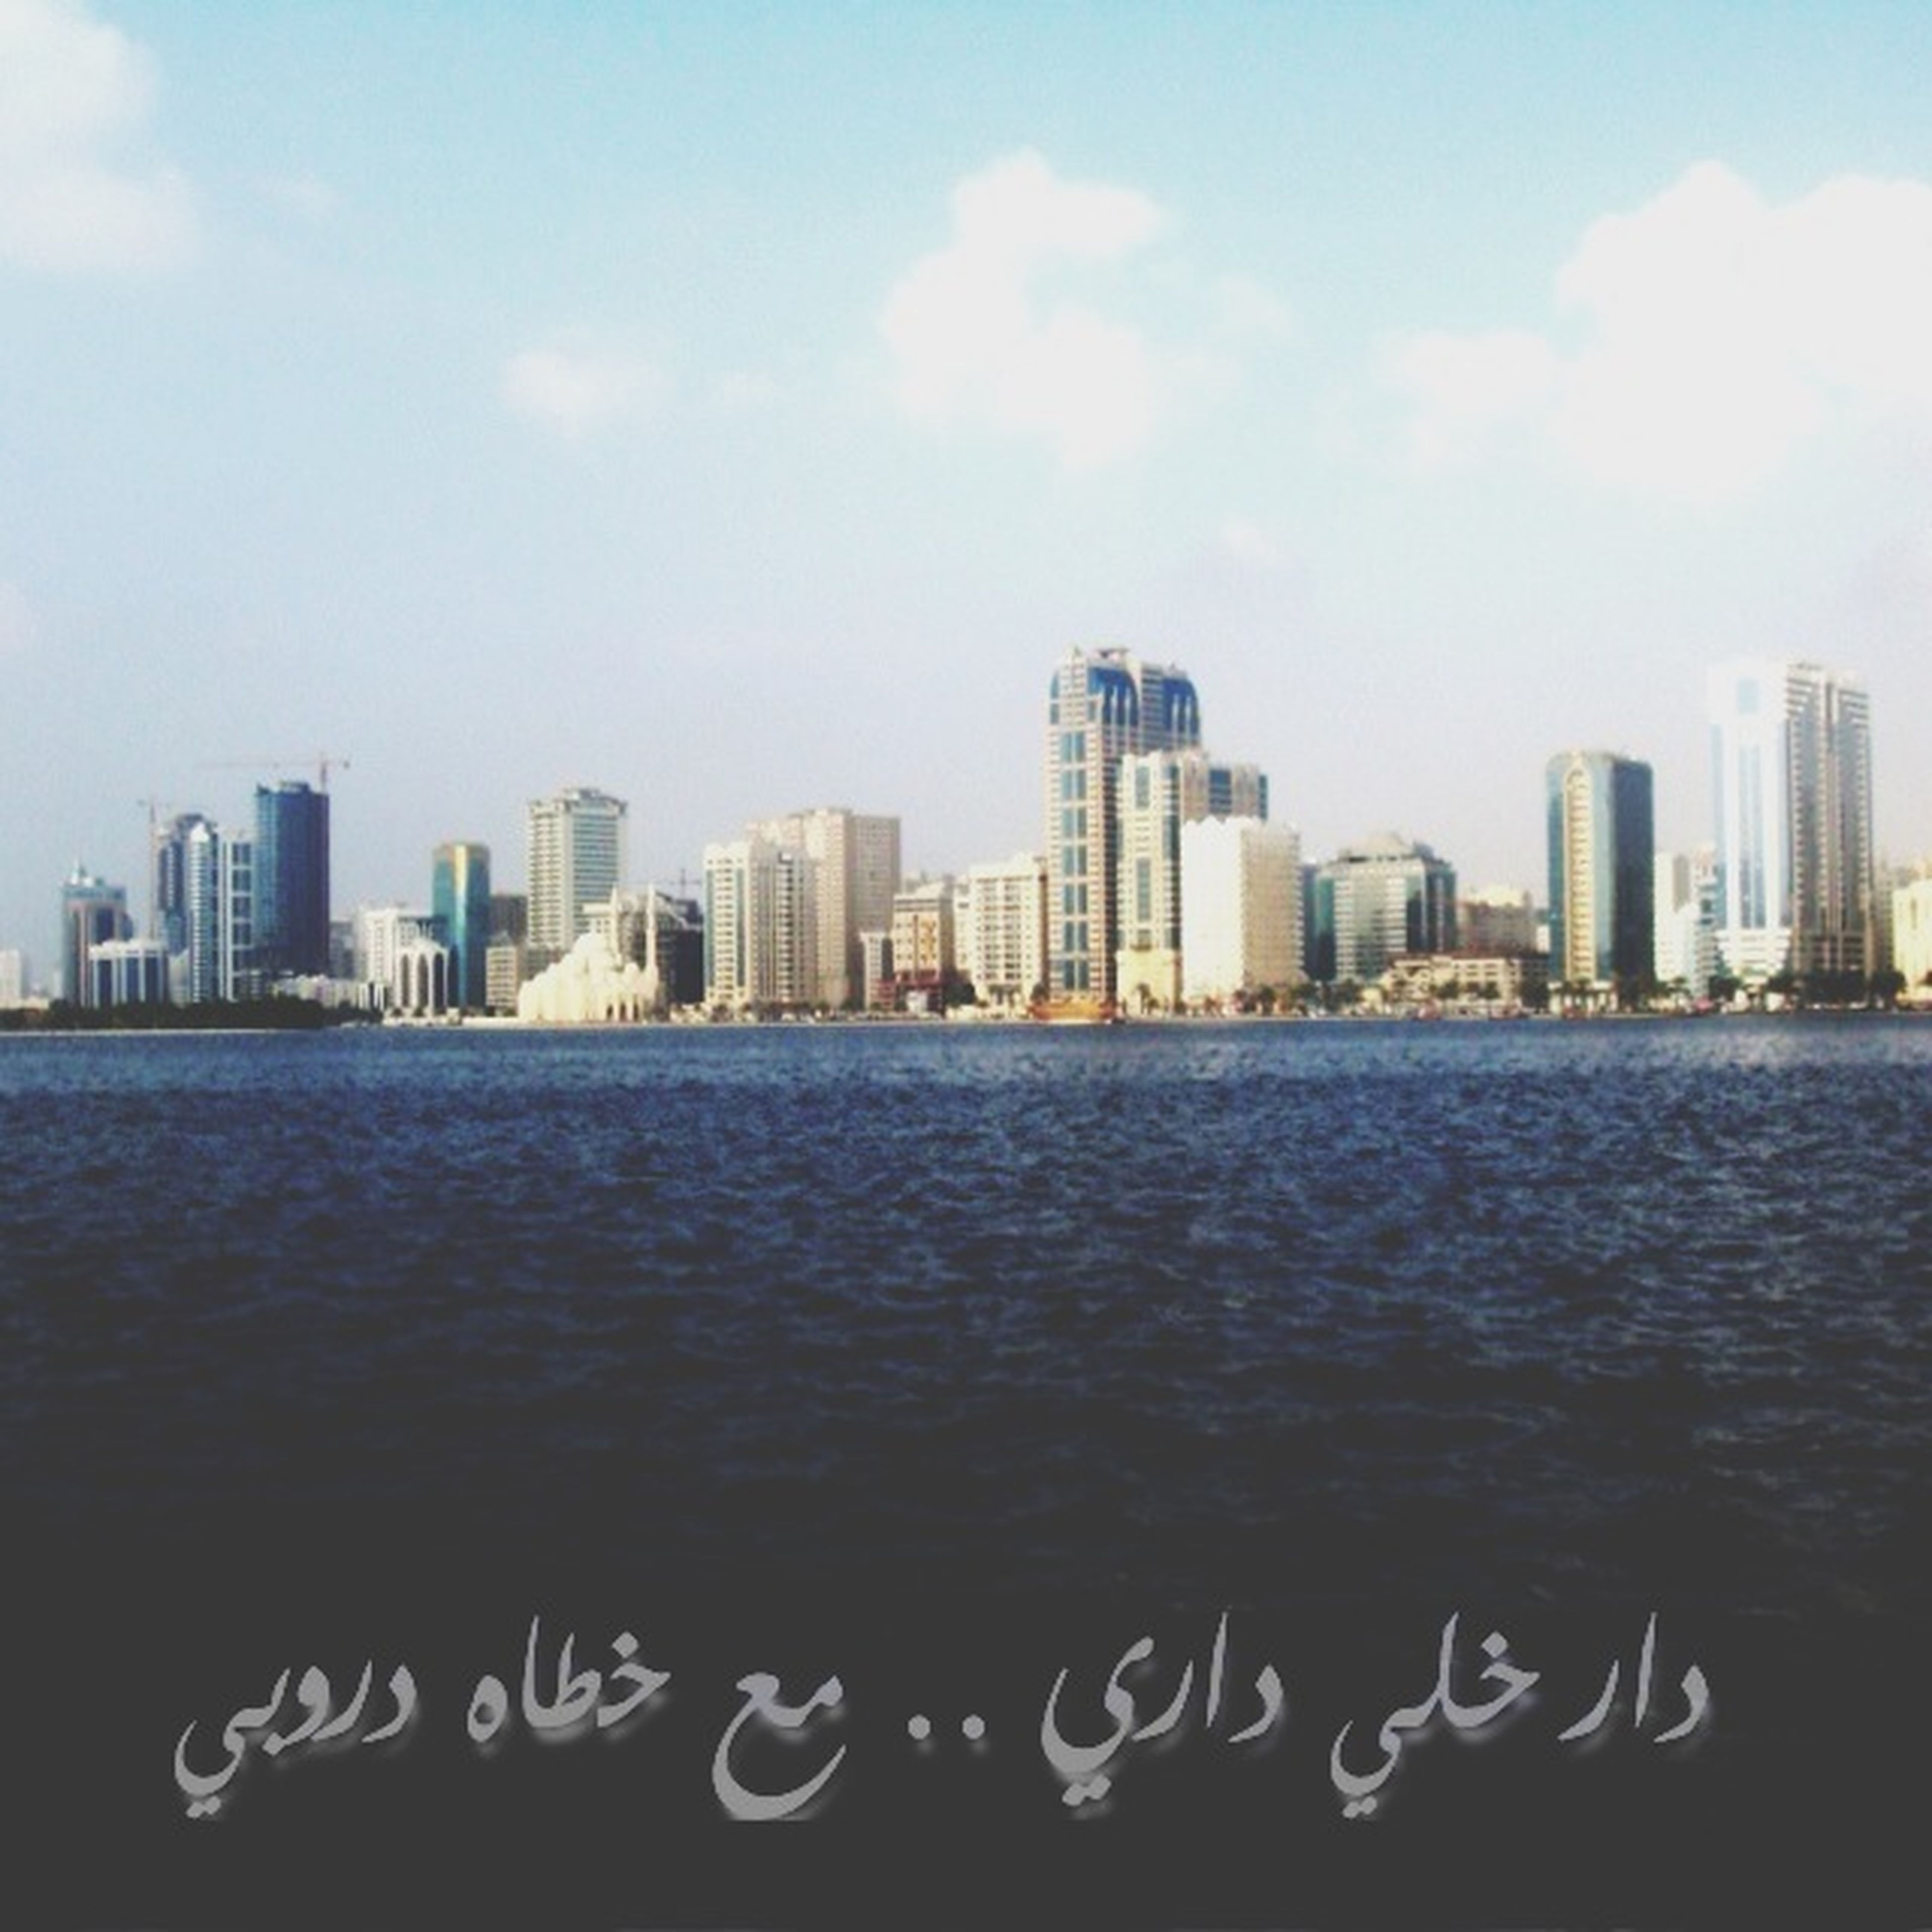 city, building exterior, architecture, skyscraper, water, built structure, sky, cityscape, waterfront, urban skyline, river, sea, office building, modern, tower, skyline, tall - high, cloud - sky, cloud, rippled